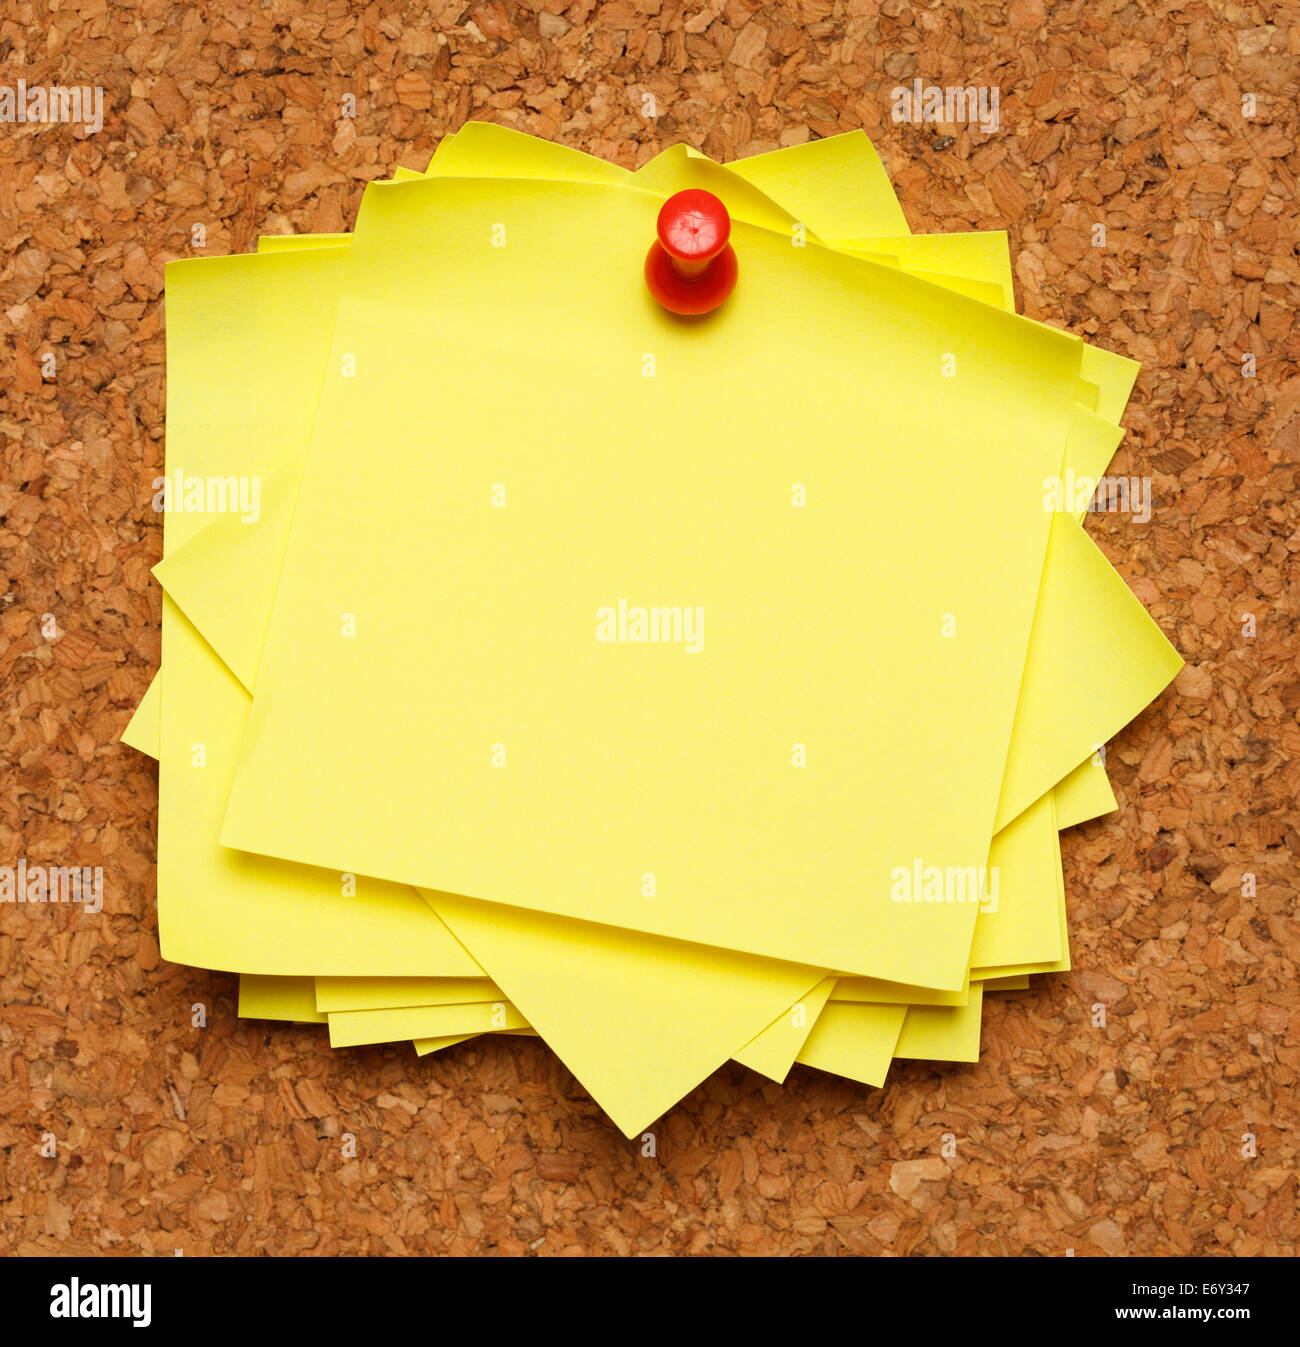 Bunch of sticky notes tacked to cork board. - Stock Image